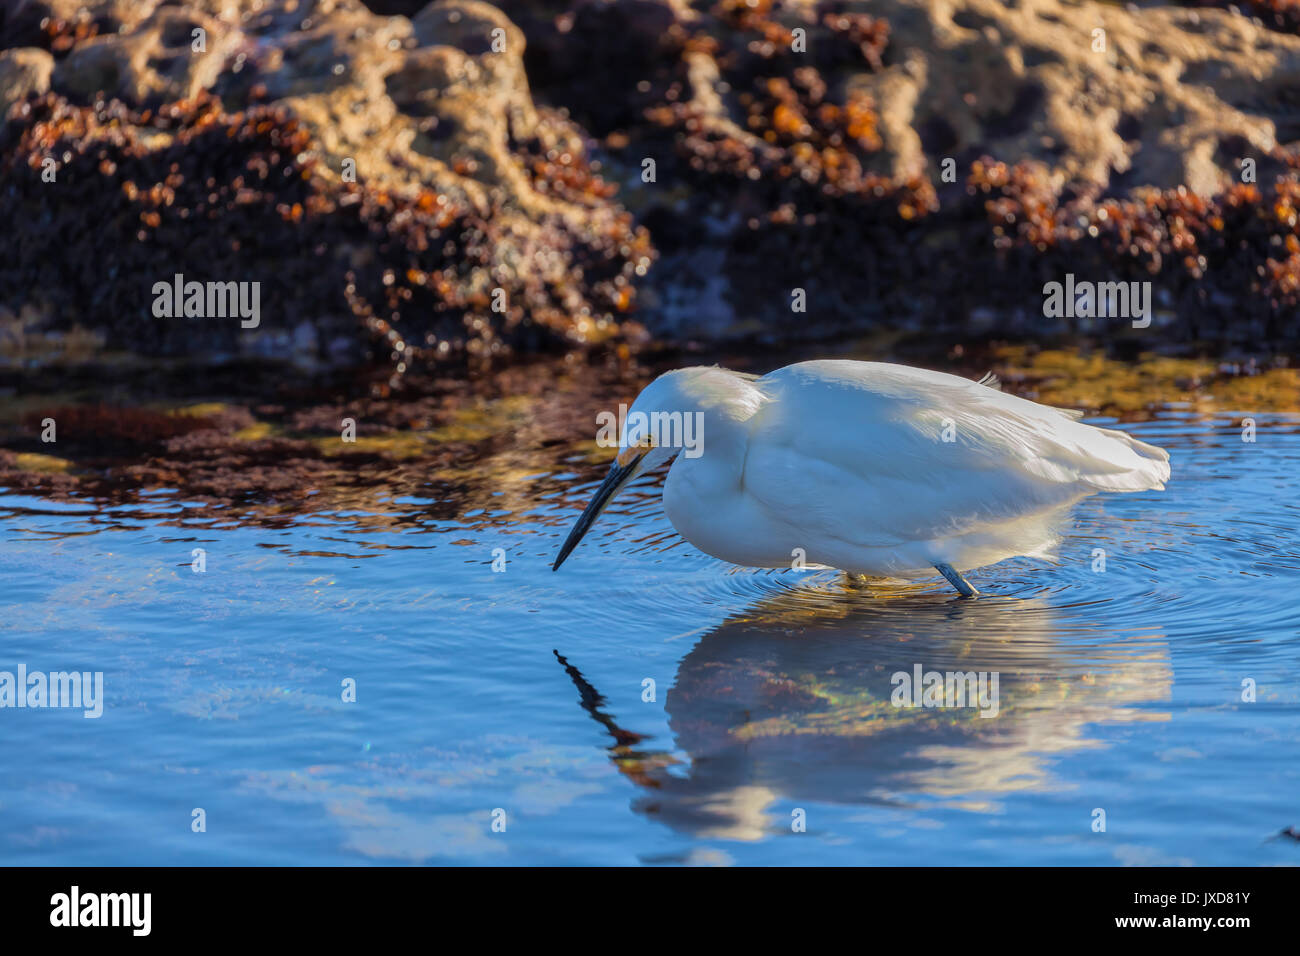 A snow egret (Egretta thula) was looking for its next meal along the California coast at Point Lobos State Reserve, USA - Stock Image